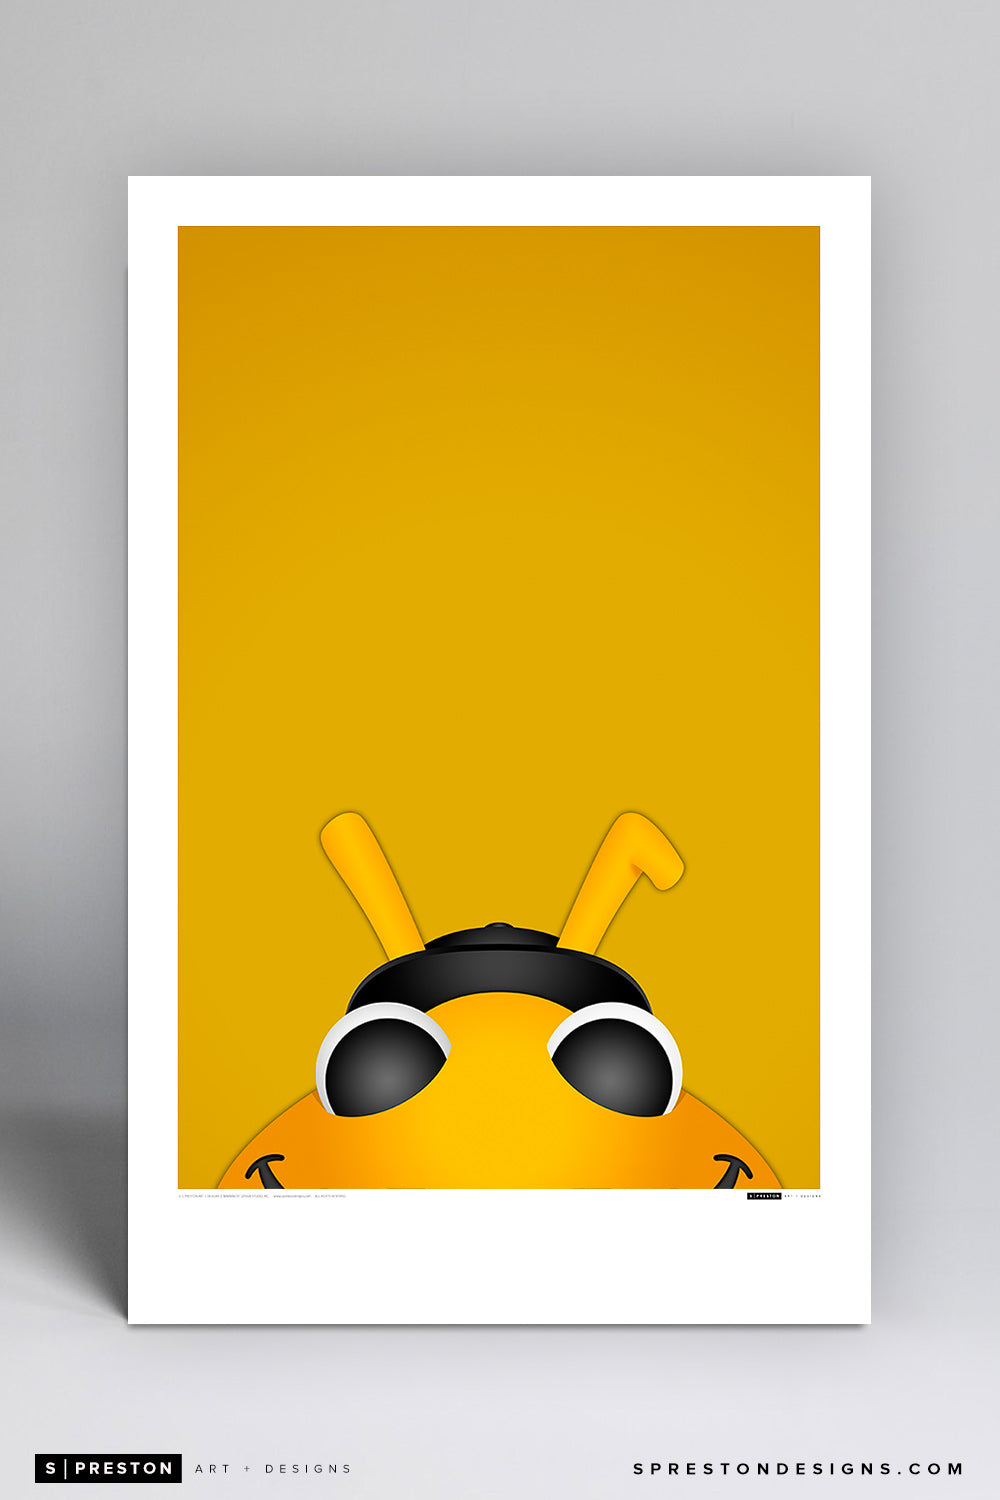 Minimalist Bumble - Salt Lake Bees Art Poster Art Poster - Salt Lake Bees - S. Preston Art + Designs